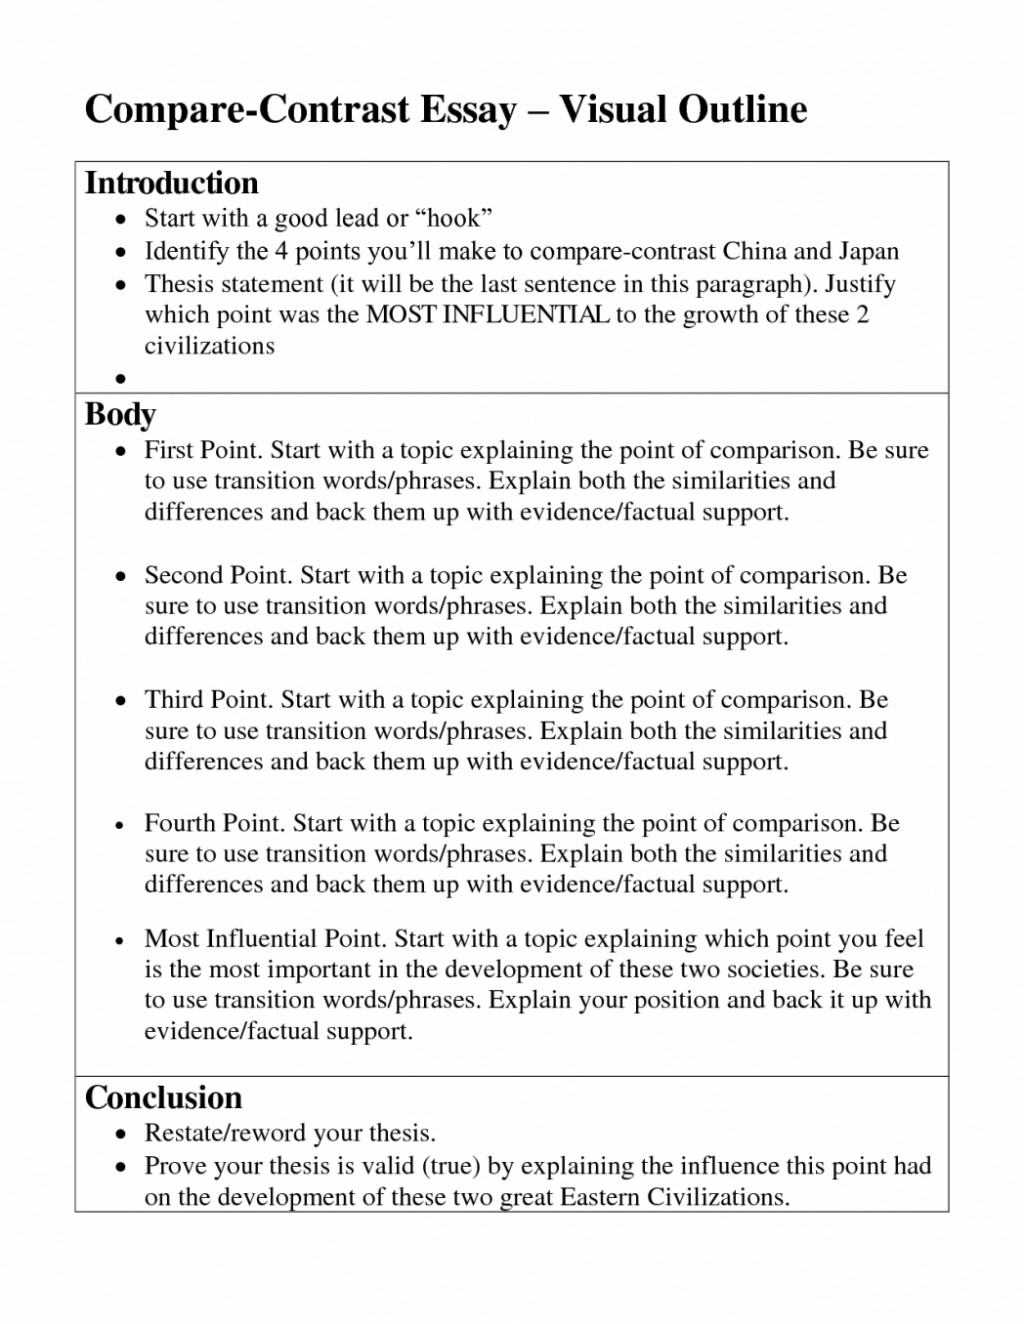 009 Compare And Contrast Essay Topics For High School Students English College Pdf Research Paper 1048x1356 Fantastic Easy Sports Large